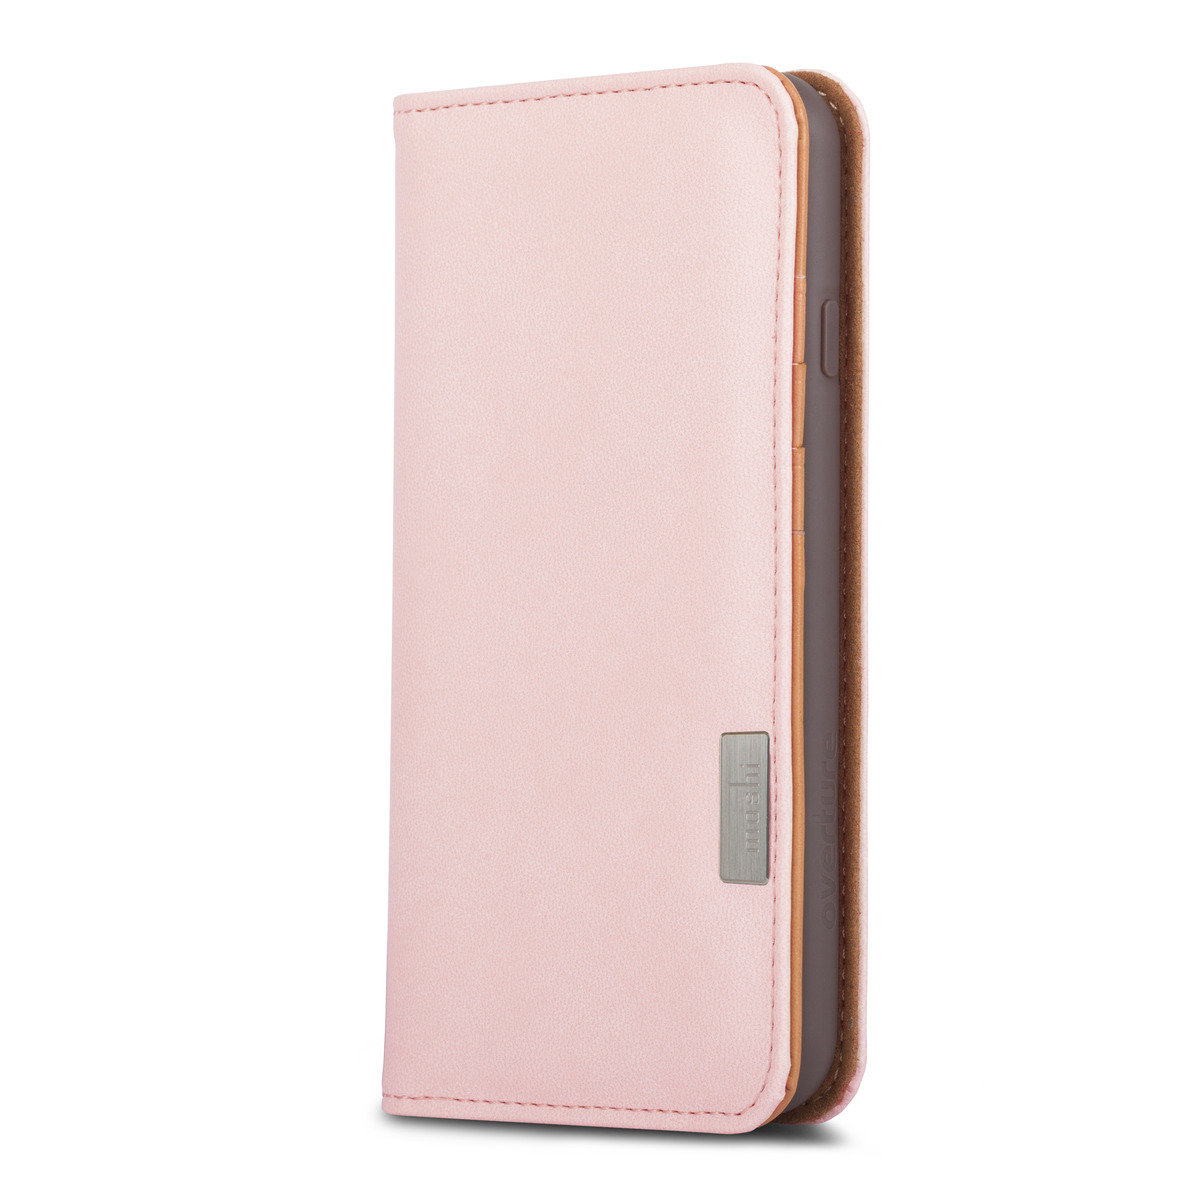 "Overture for new iPhone7 4.7"" - Daisy Pink"